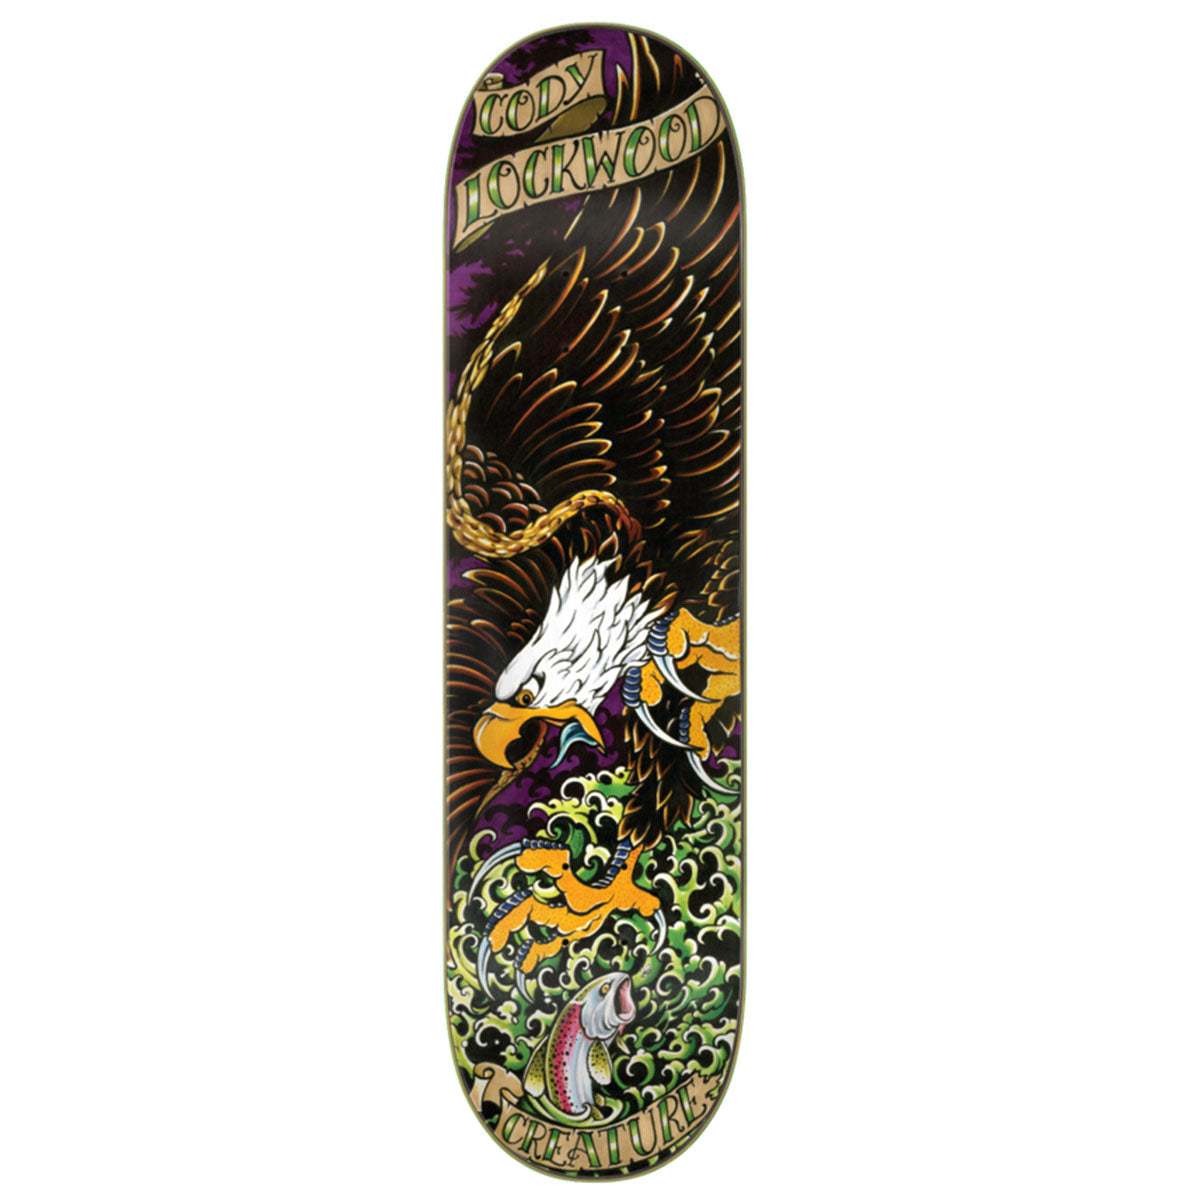 Creature Deck - Cody Lockwood Beast of Prey 8.25"